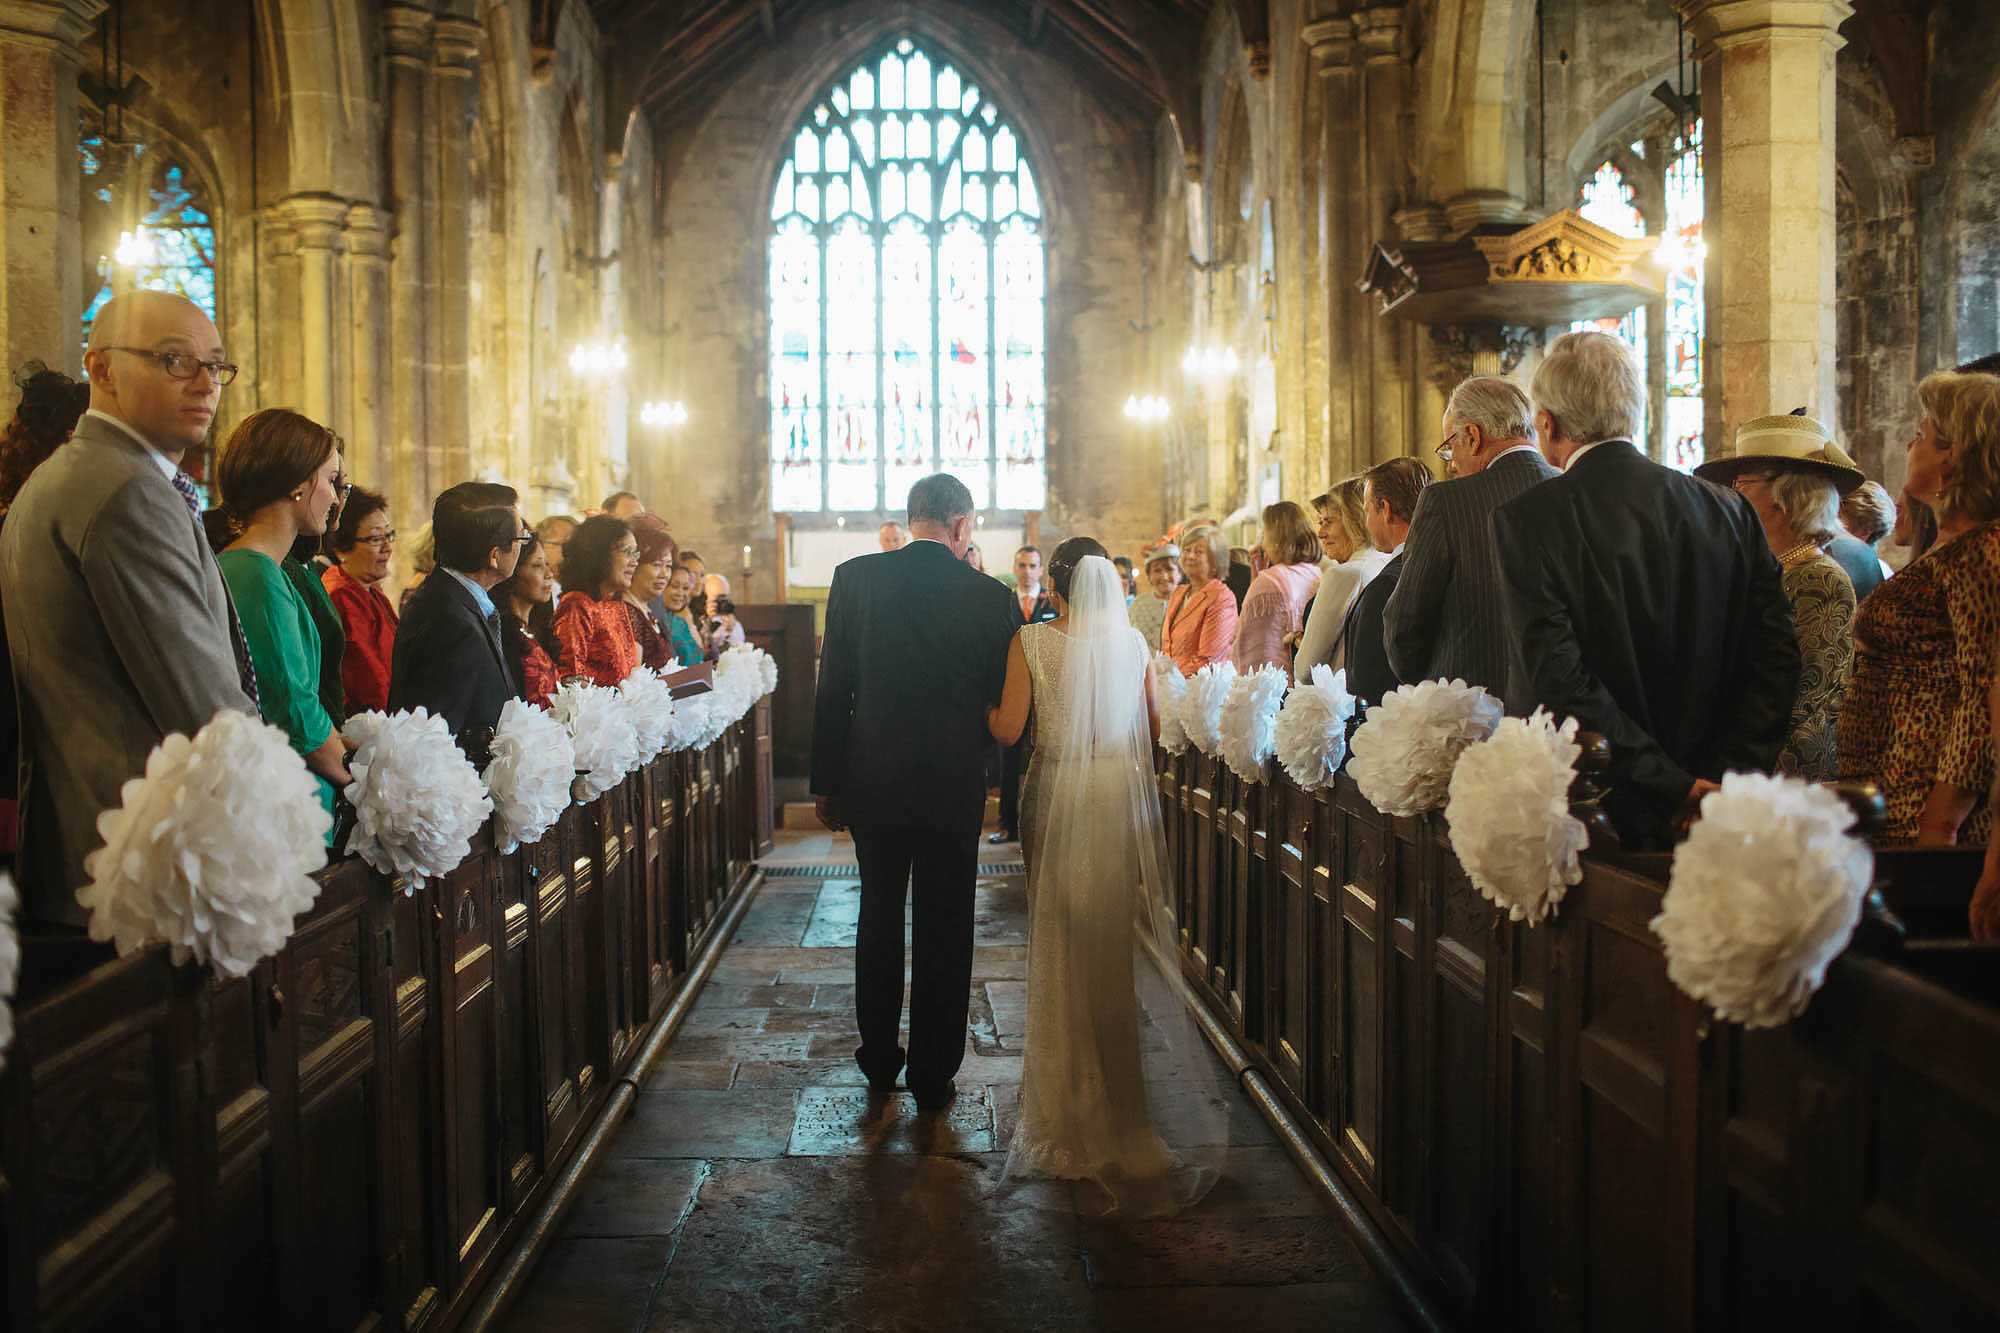 Father and bride walk down the aisle of the church in Yorkshire